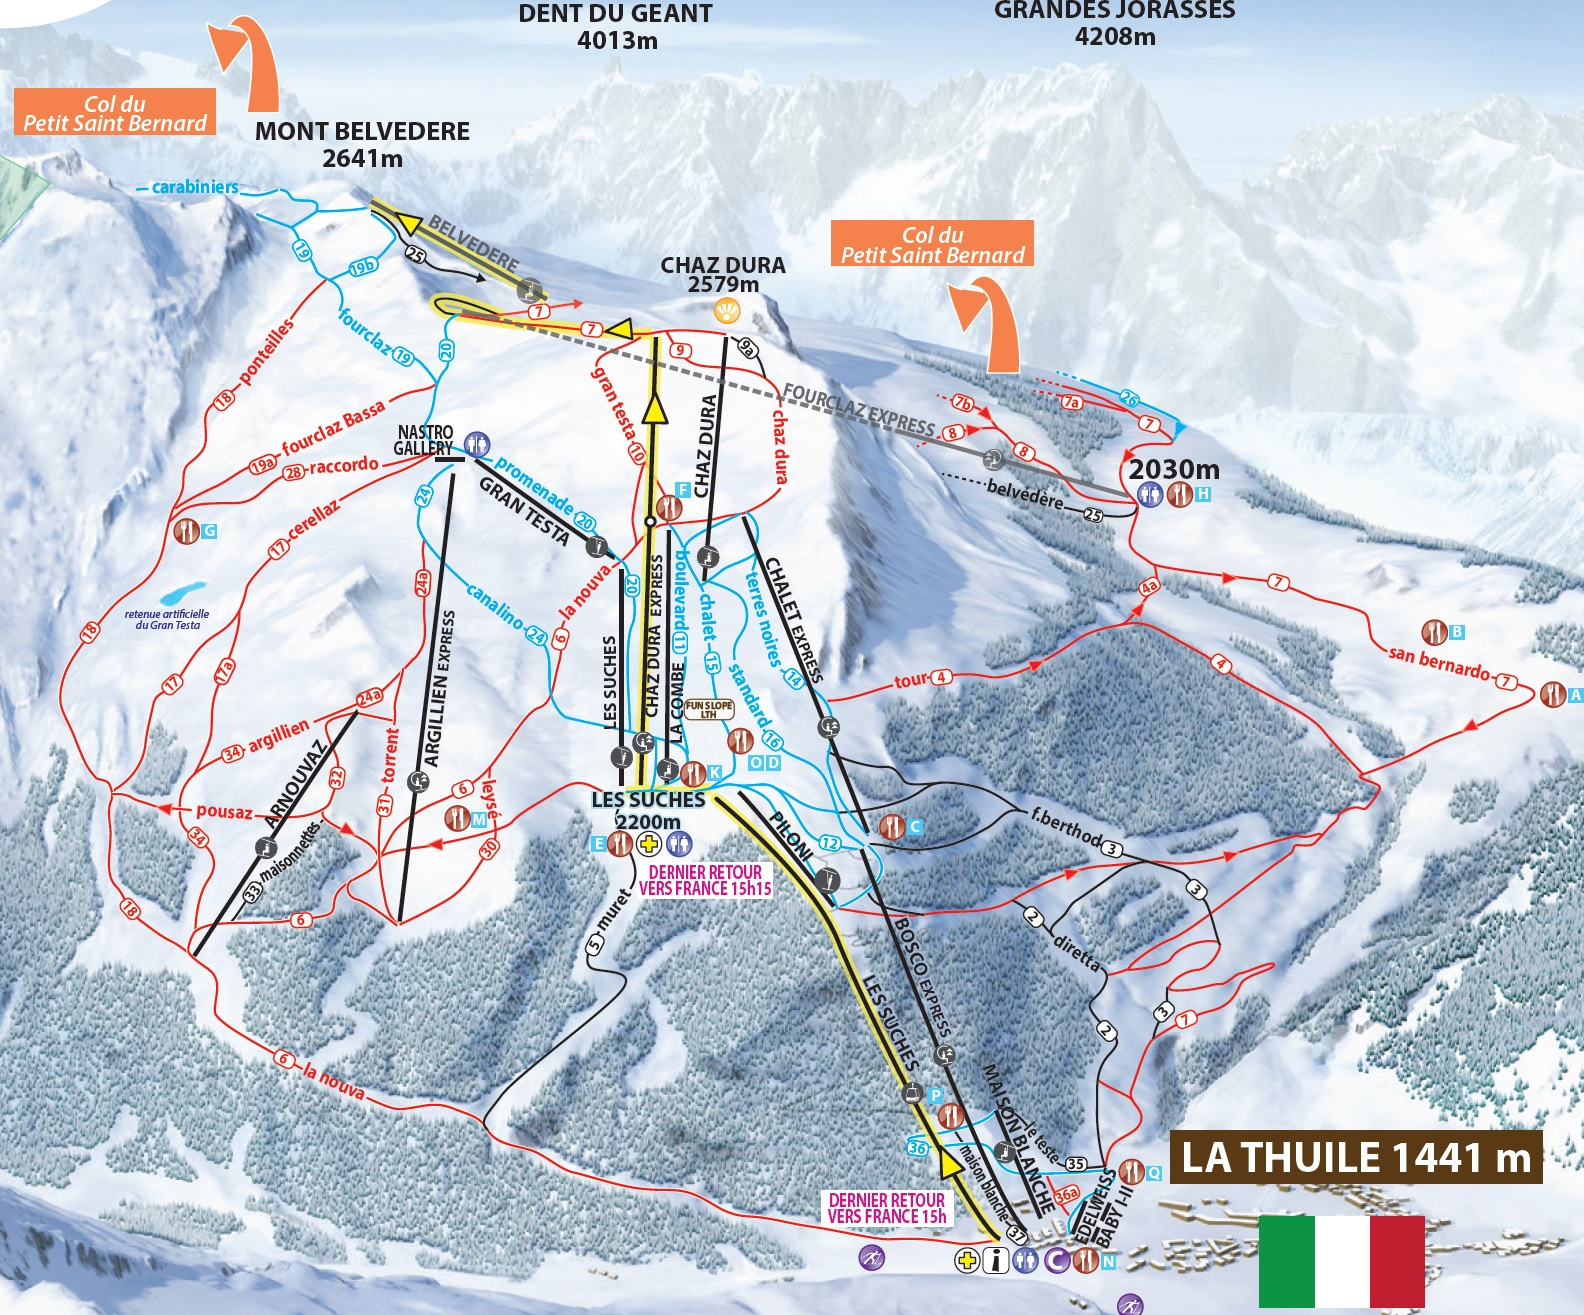 Skiing La Thuile La Thuile Ski Lifts Terrain Snow Maps Passes